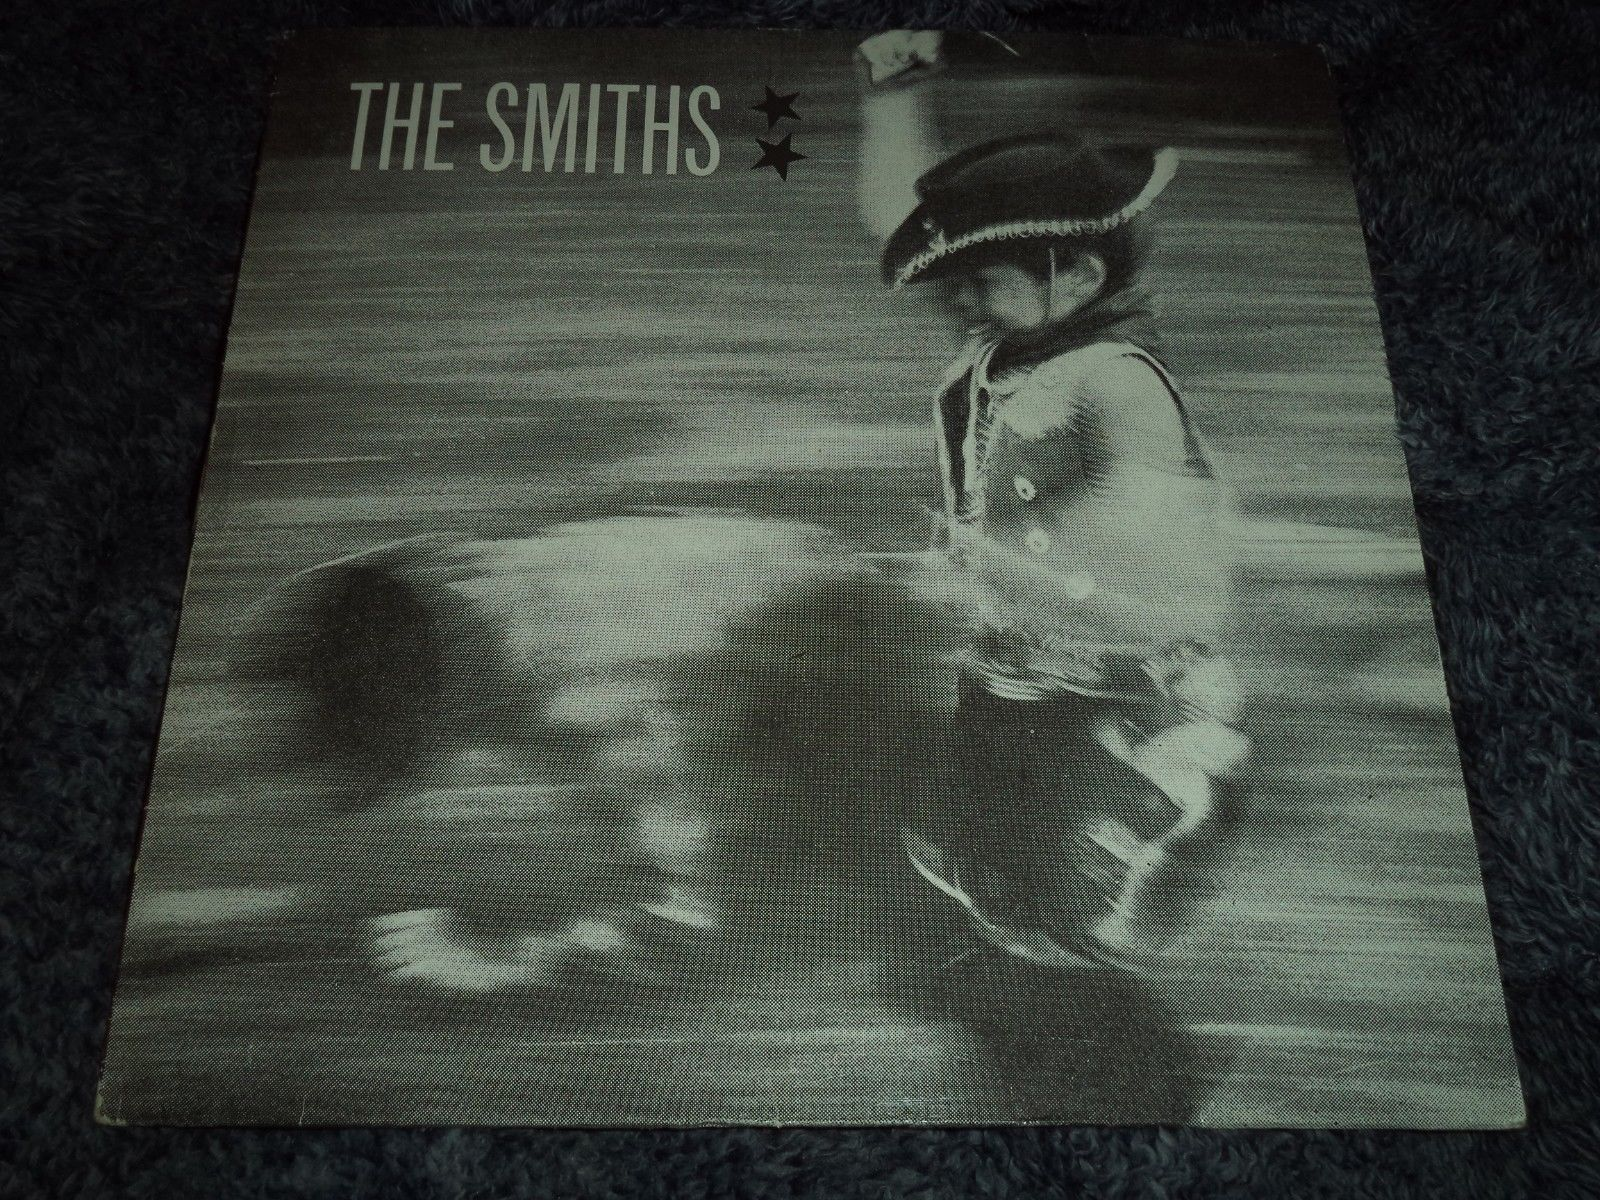 "THE SMITHS 'THE HEADMASTER RITUAL' 1985 12"" VINYL SINGLE (MEGADISC - HOLLAND)"